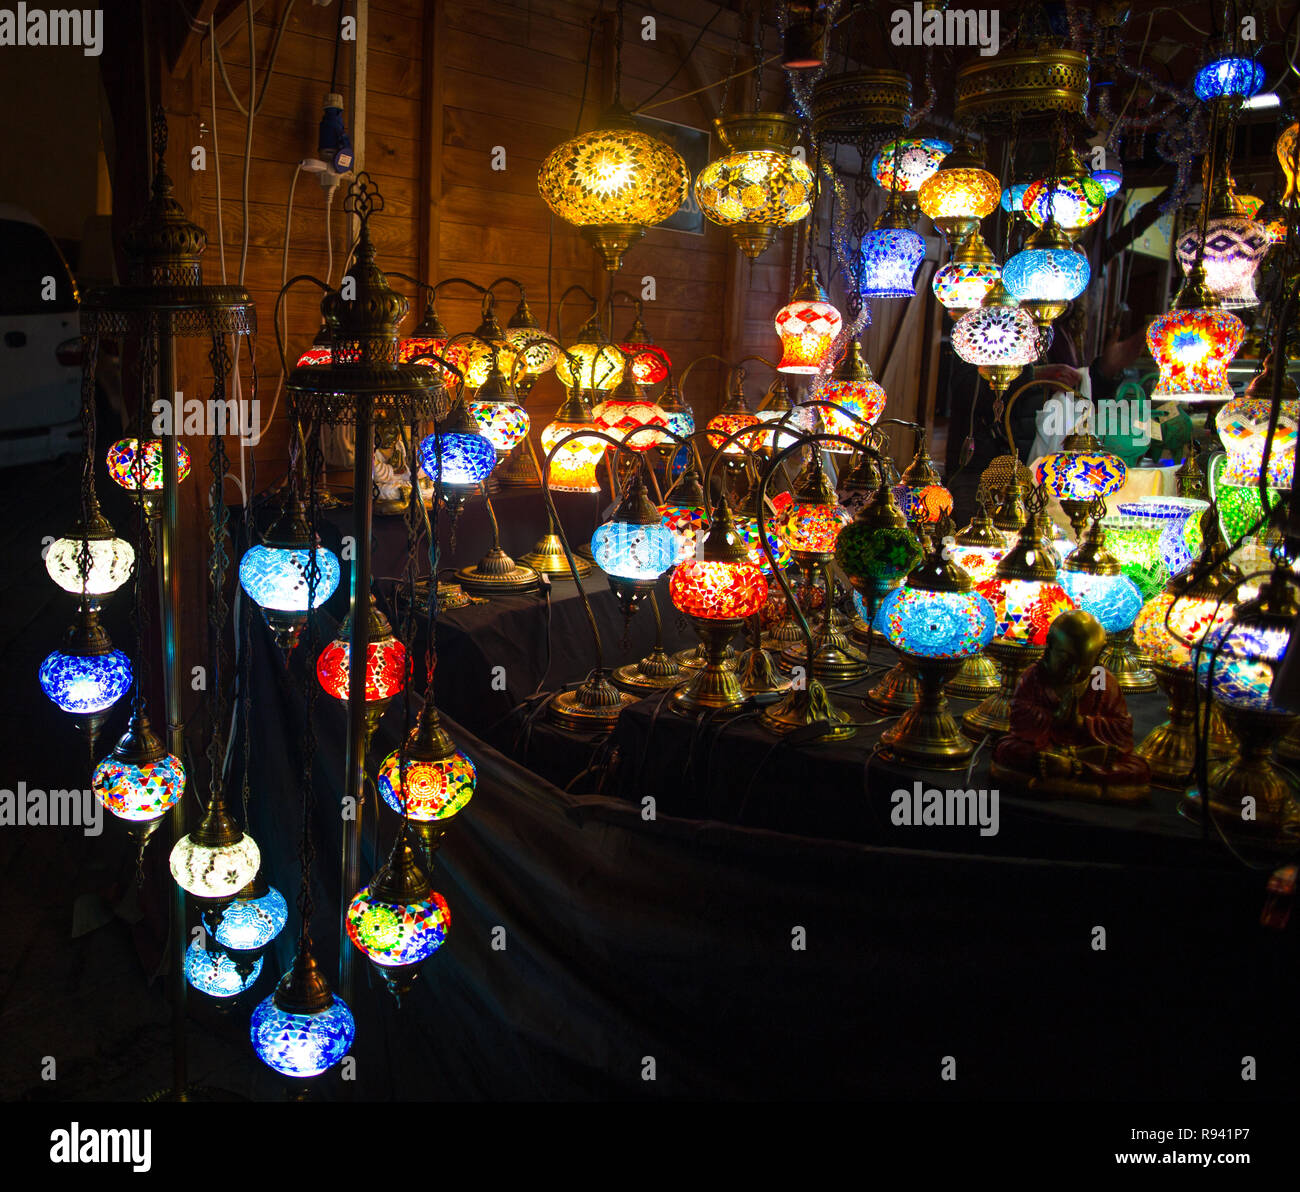 Various colorful round shaped retro glass lamps in darkness, in the market, as vintage color effect - Stock Image